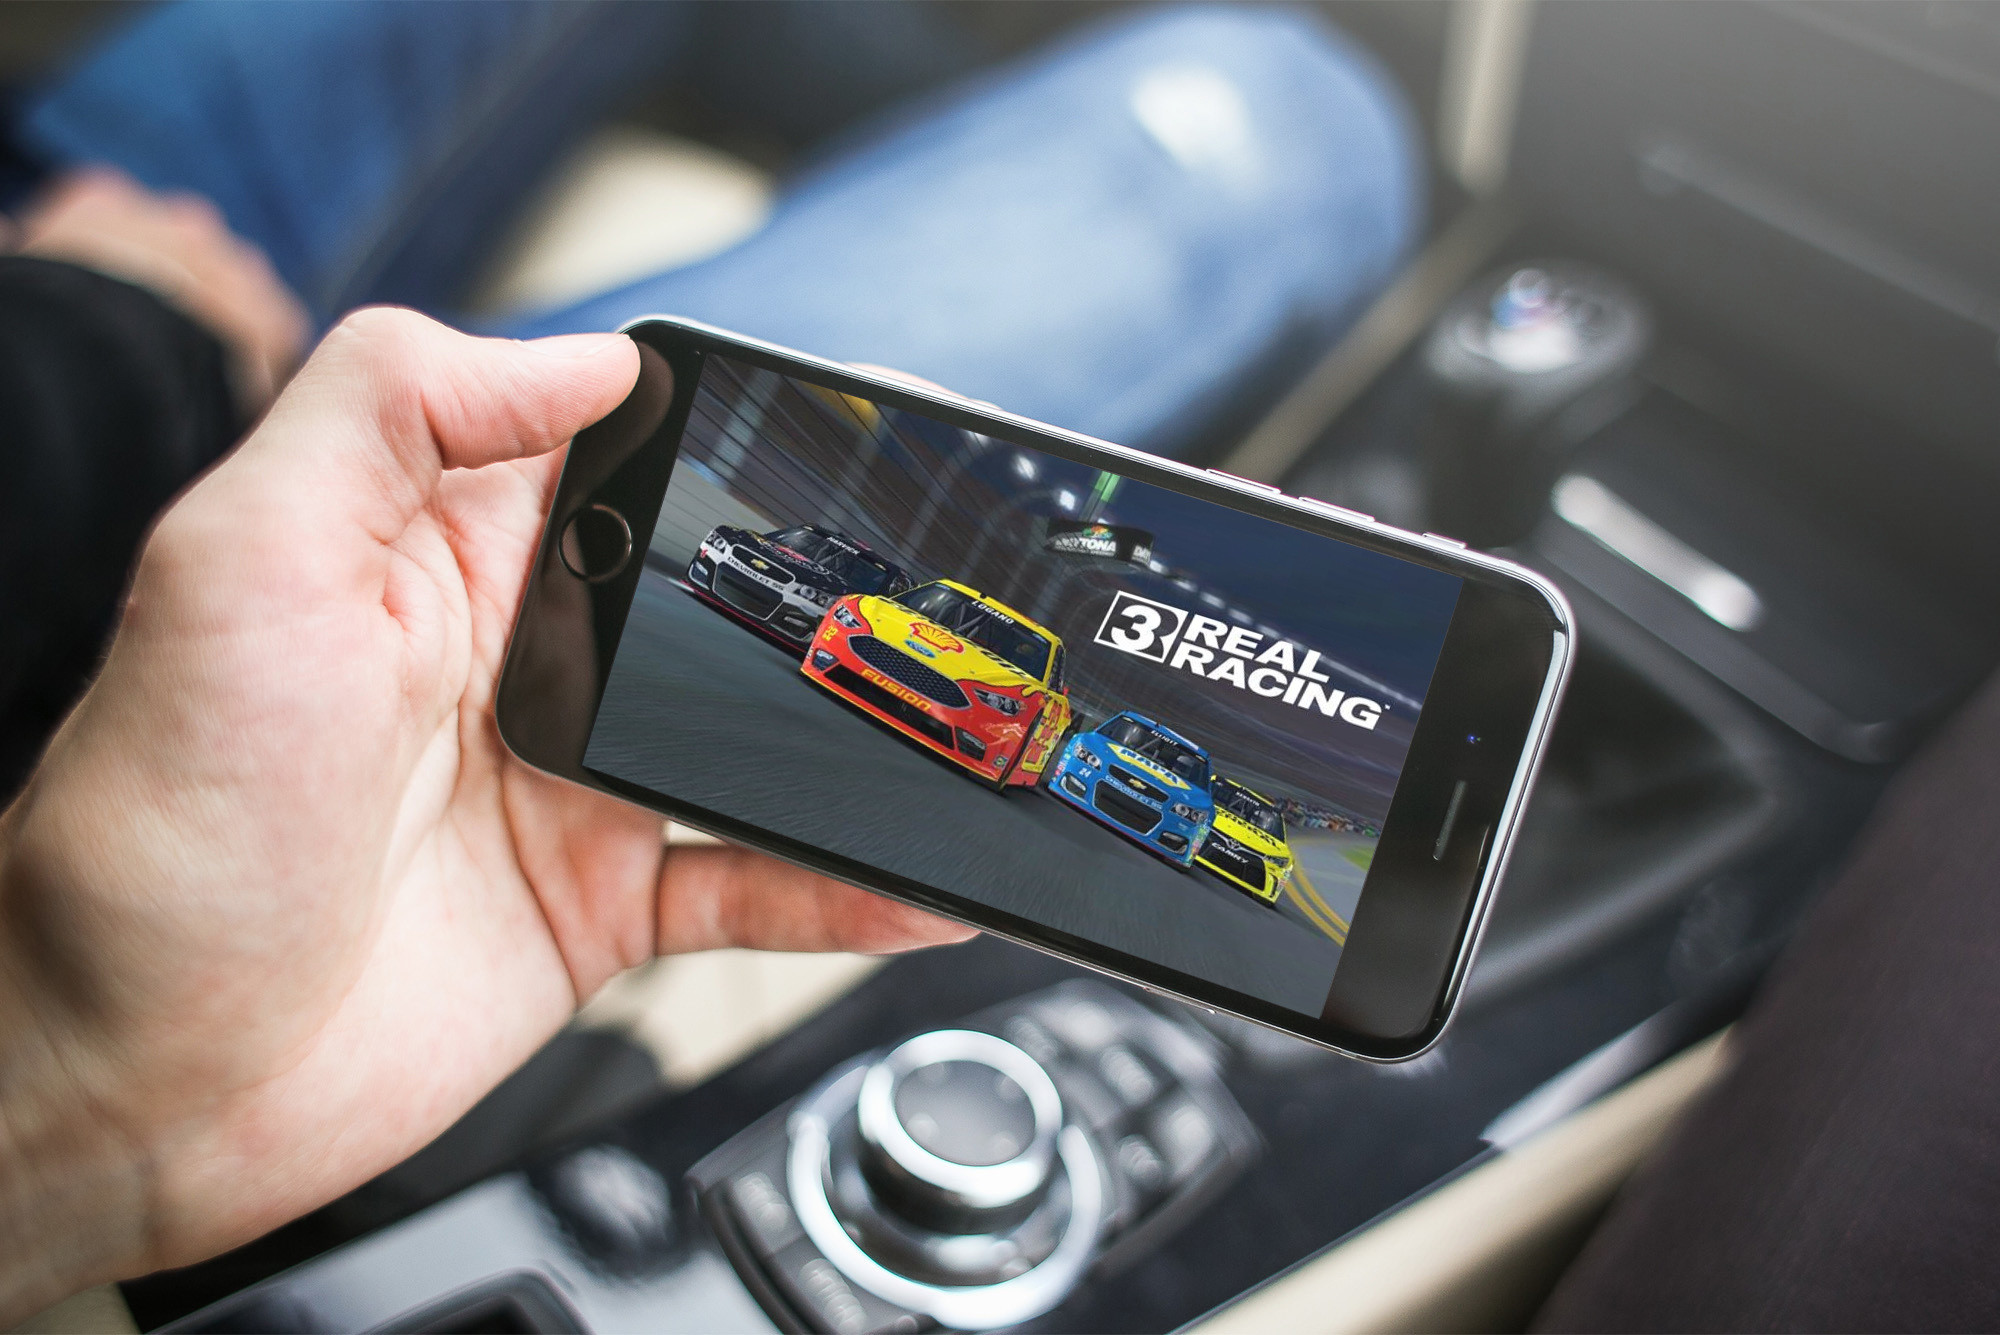 Real Racing 3 updated with Daytona Experience and Apple TV integration